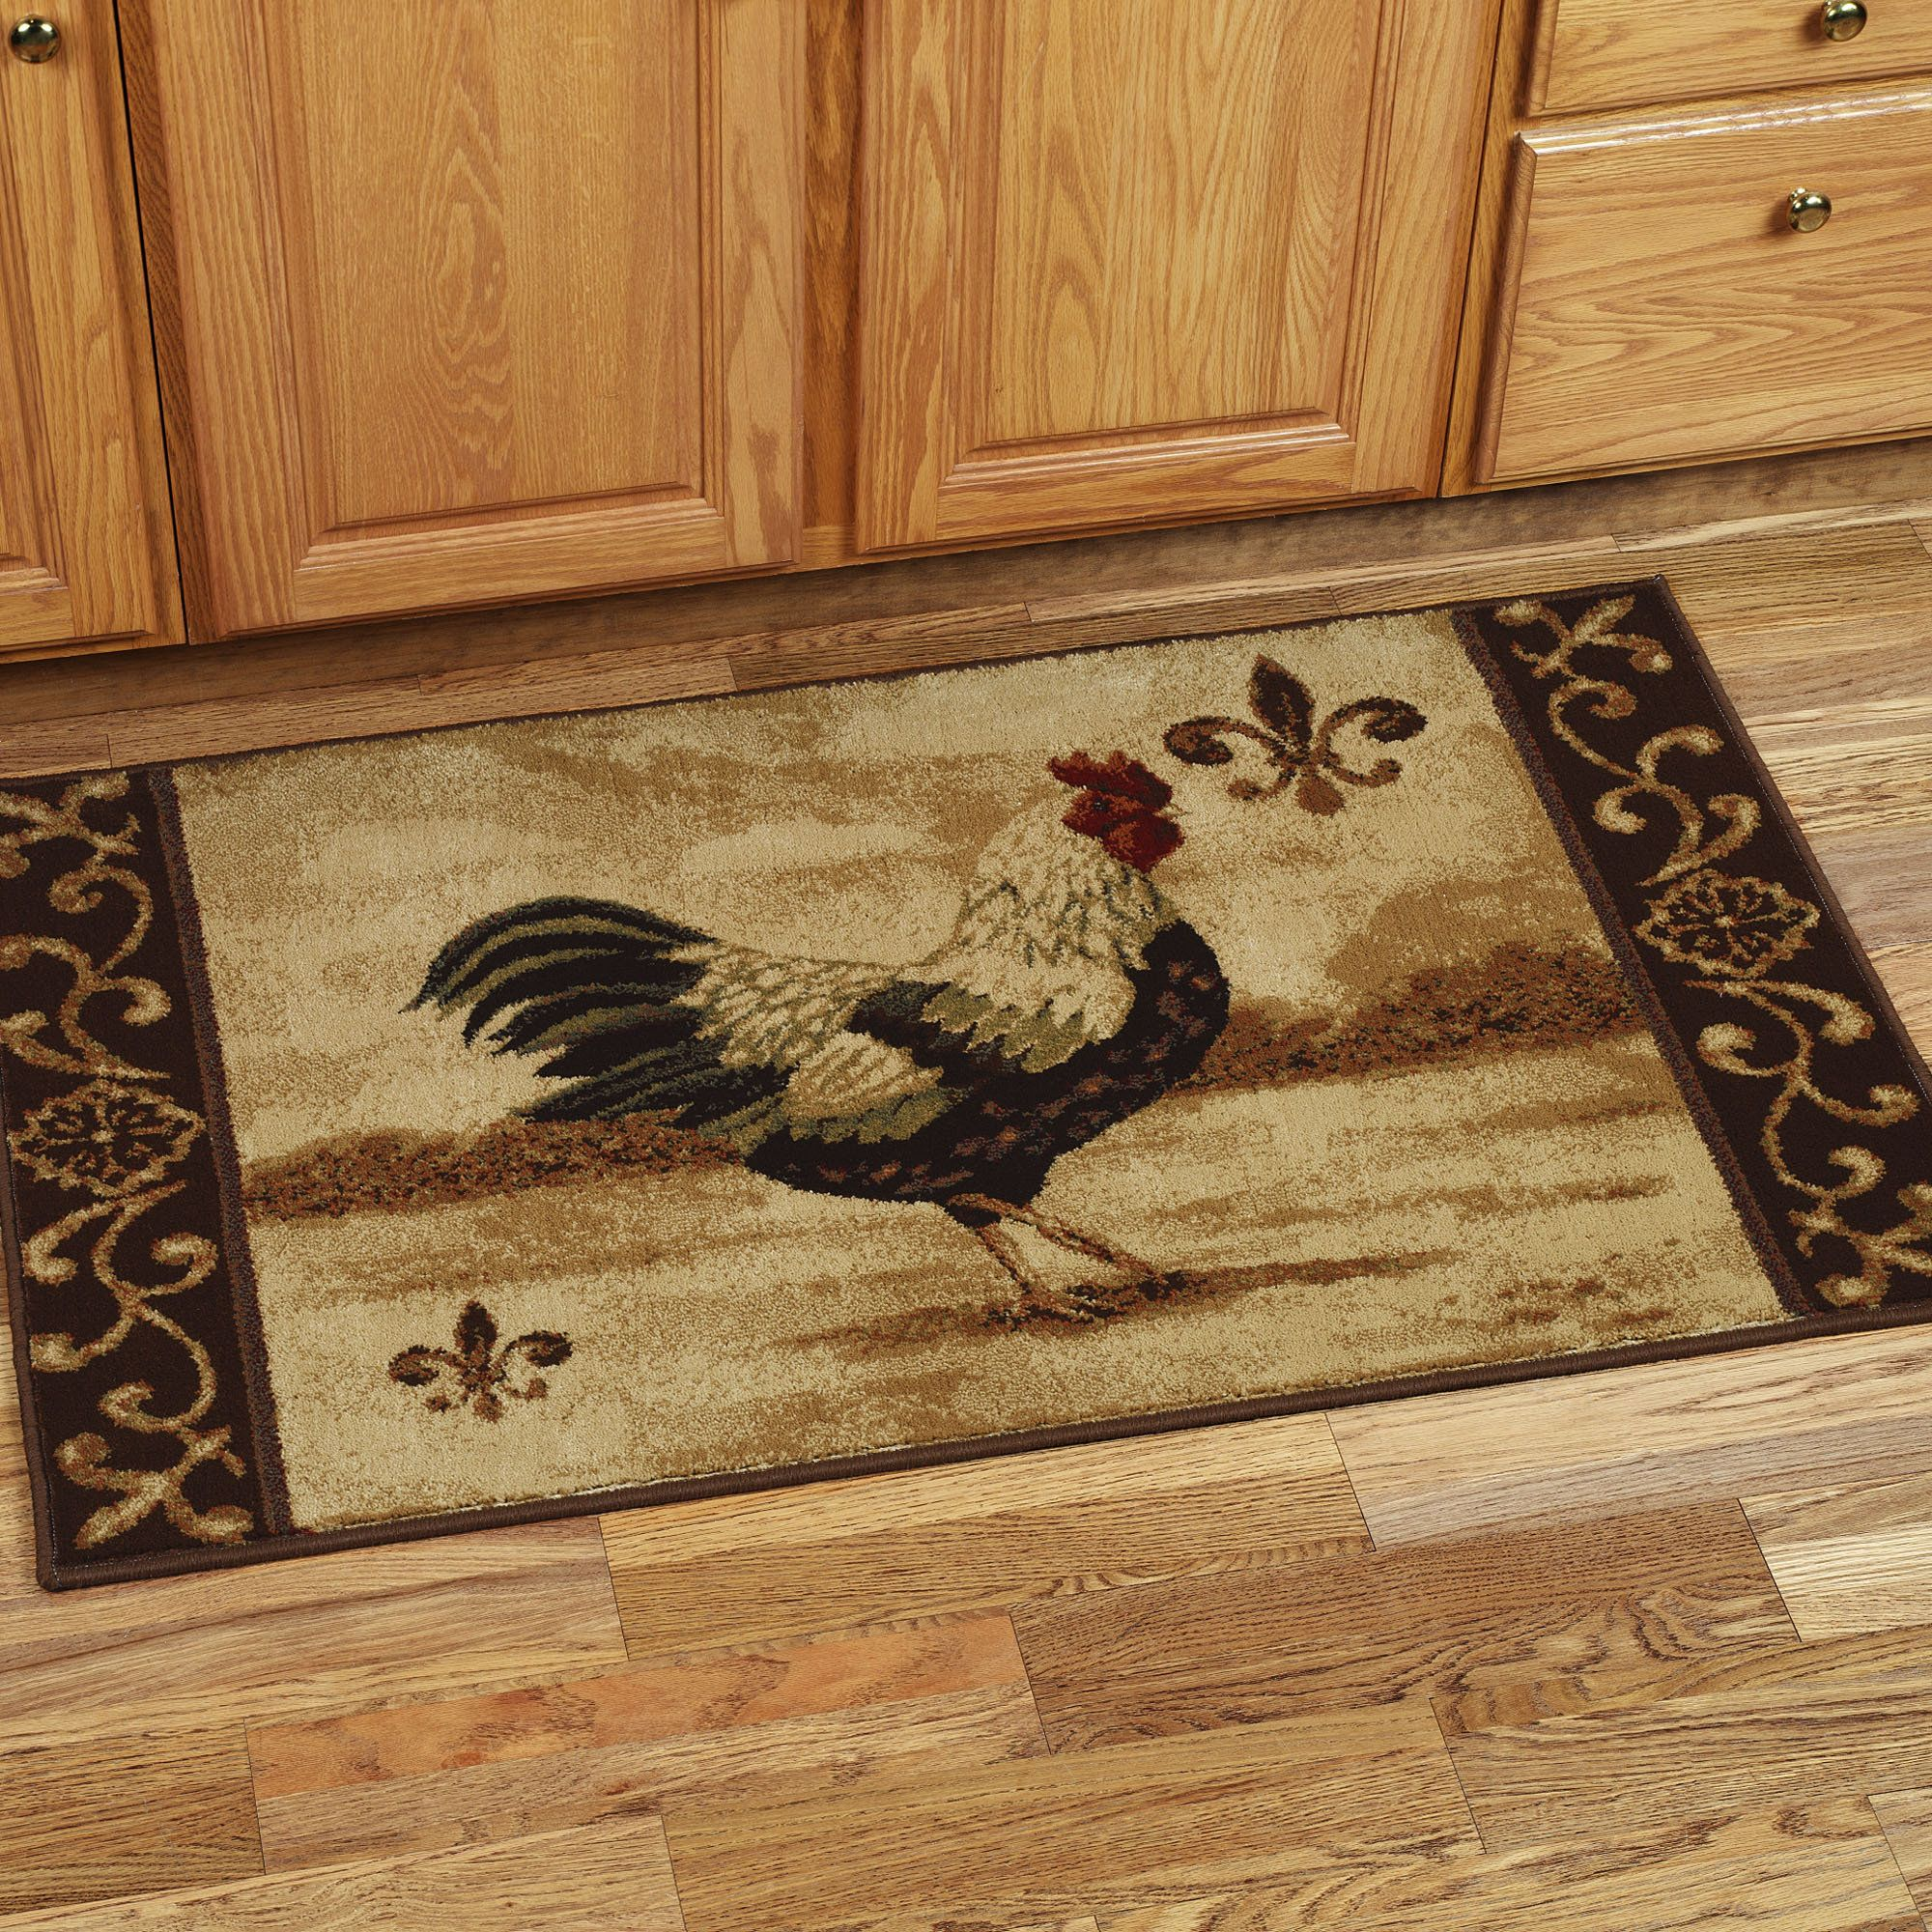 Delightful Rooster Kitchen Rugs French Country | Rooster Harvest Napkin Holder Copper  Sale Price $ 17 99